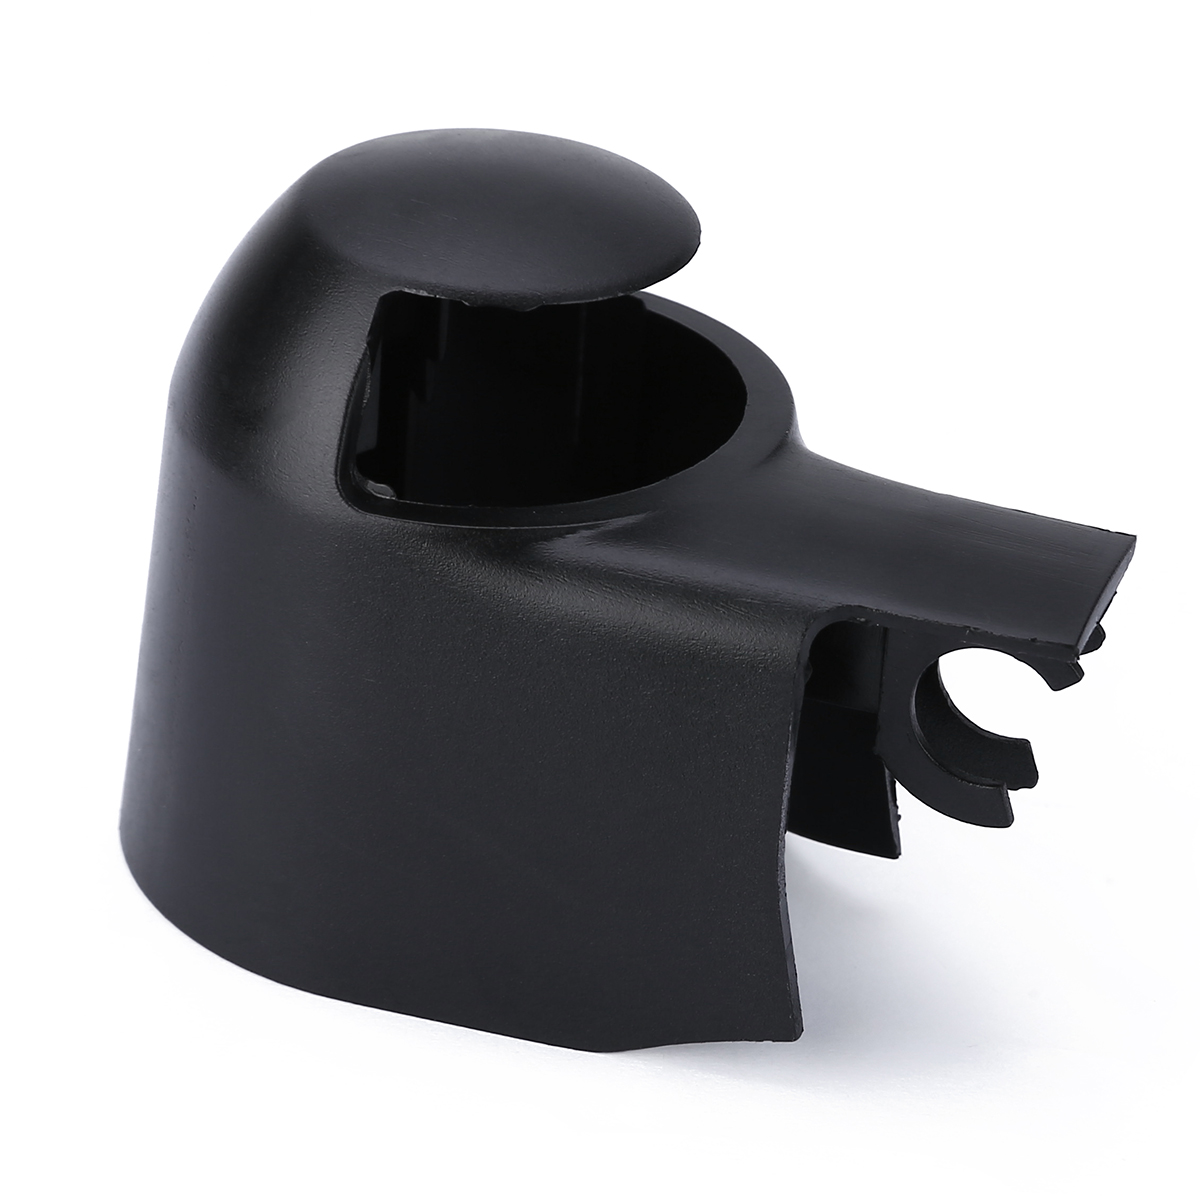 For Skoda 1pc Rear Window Wiper Arm Cap Cover Black Plastic For Fabia Roomster Superb